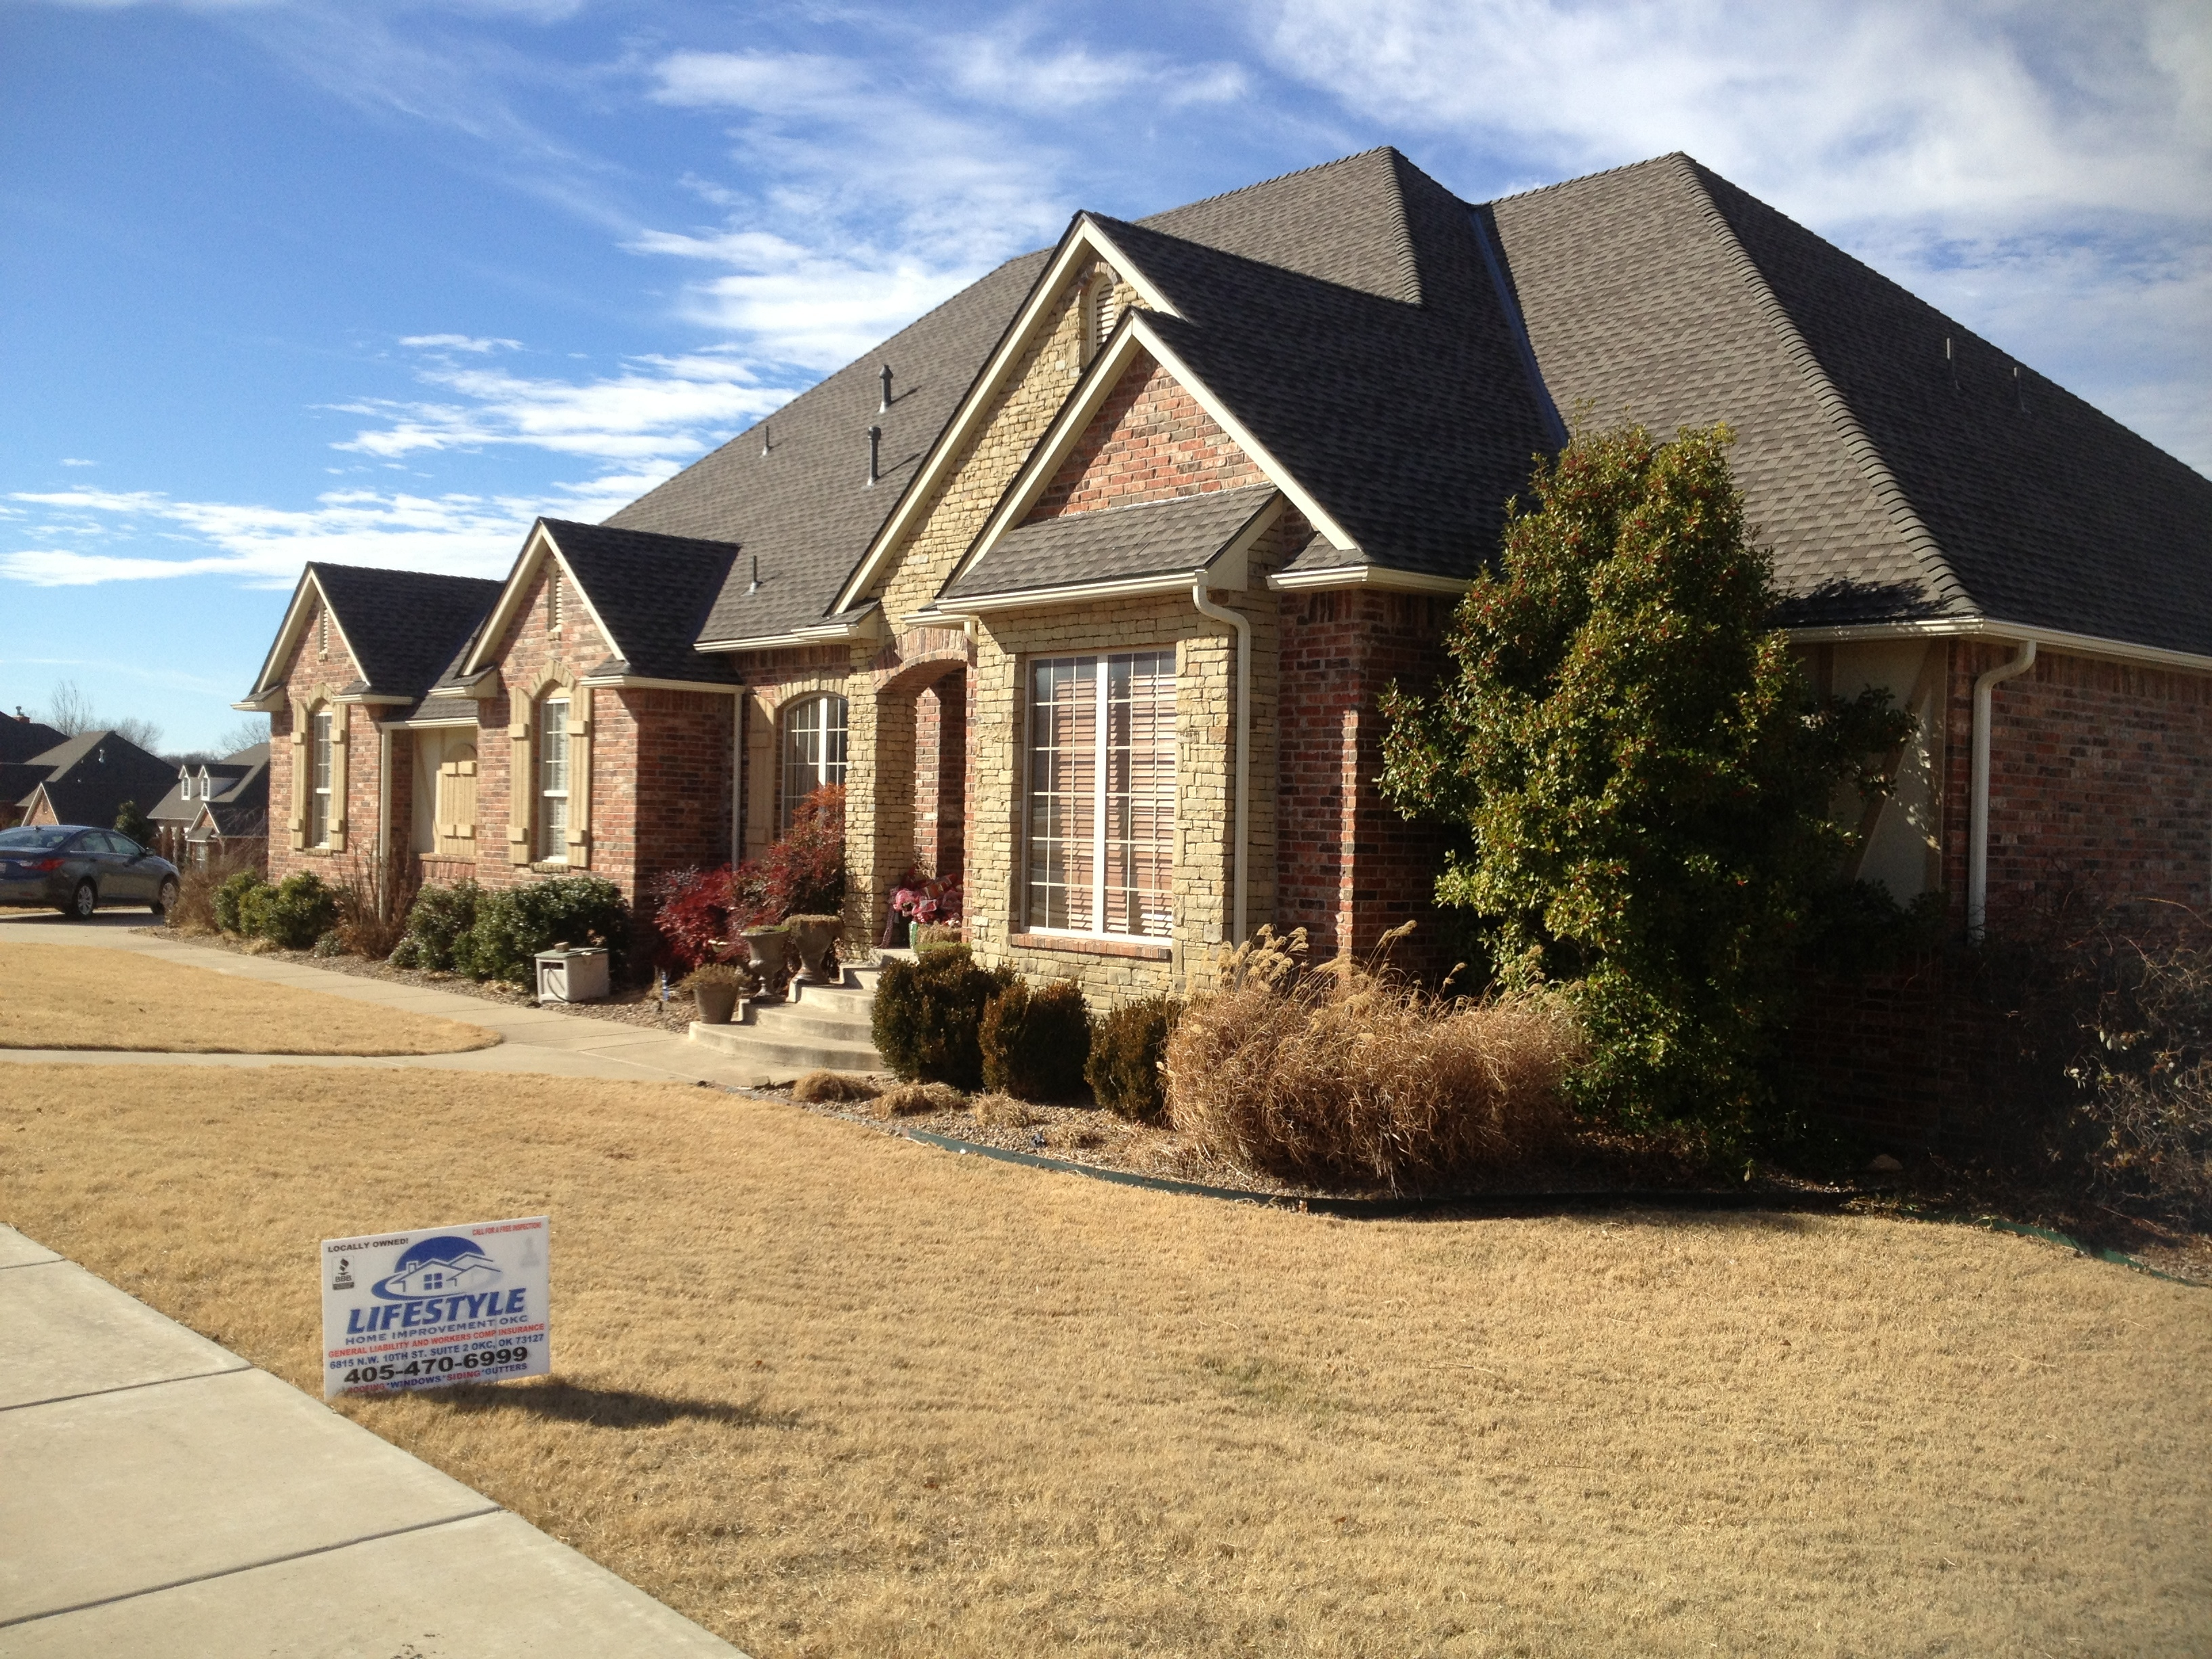 Lifestyle home improvement okc inc roofing and for Building a house in oklahoma